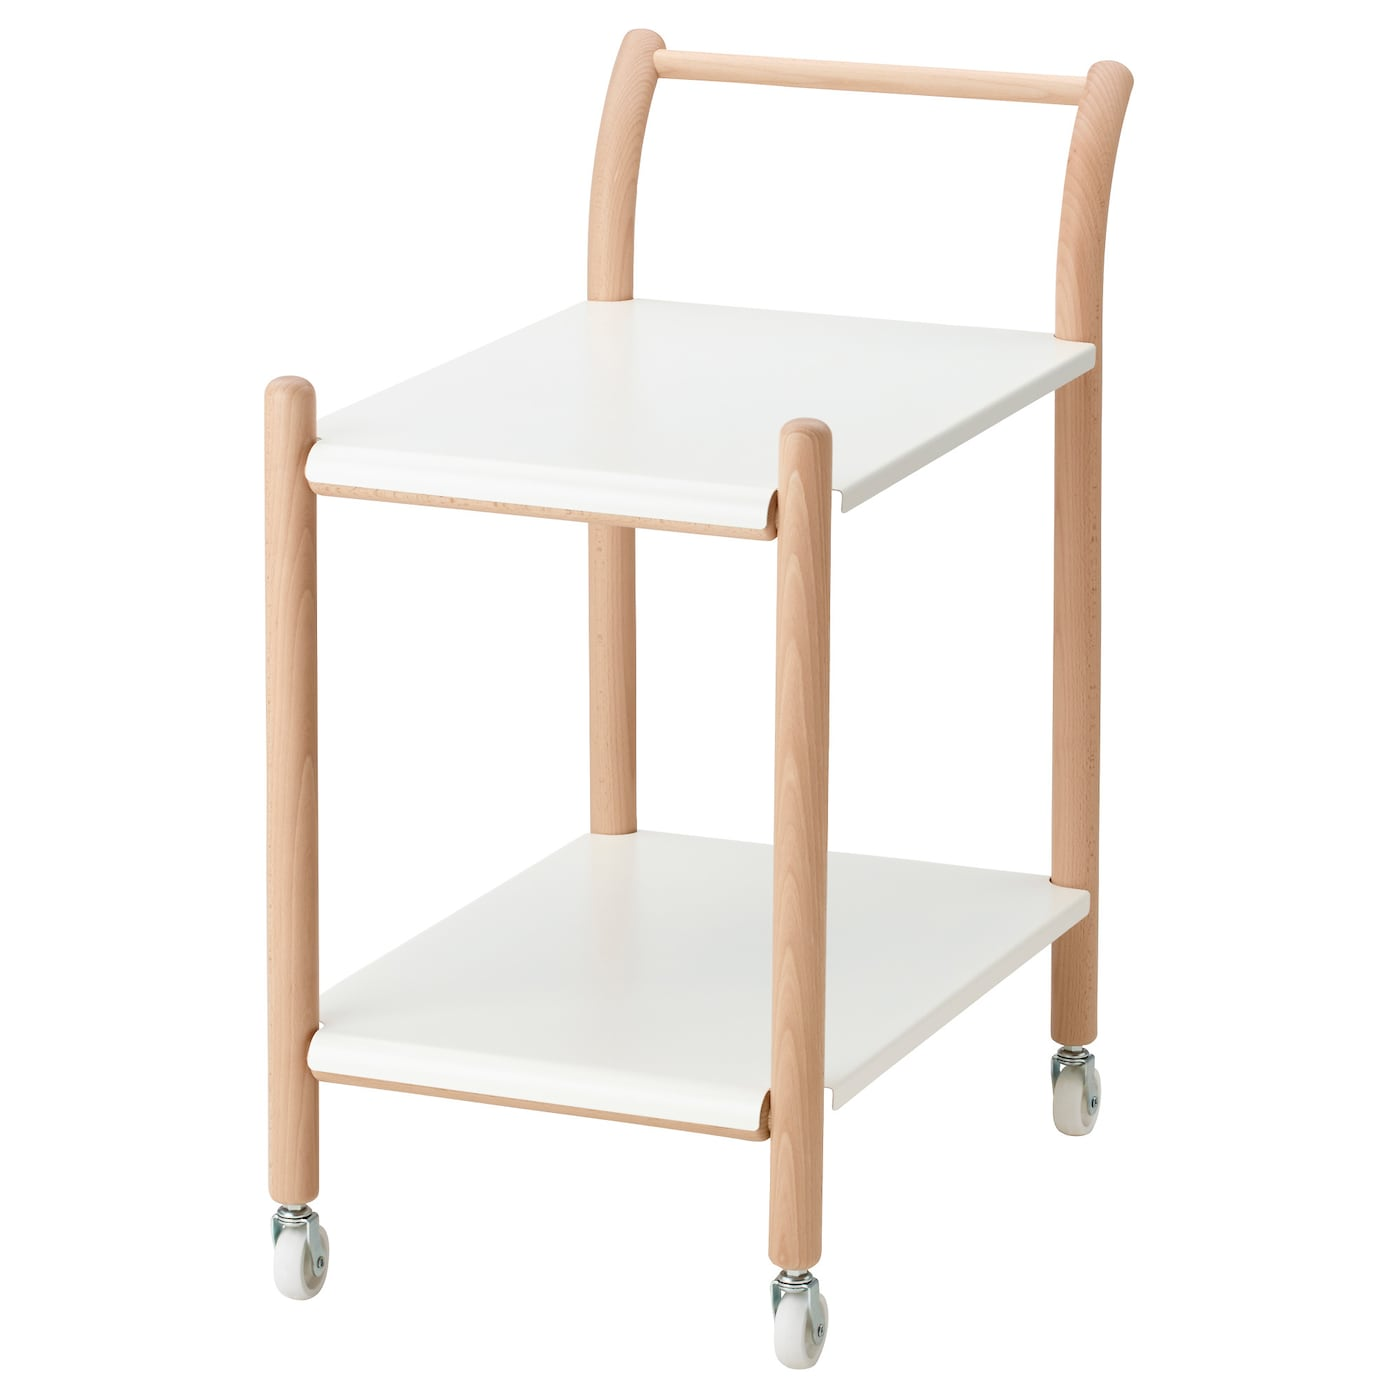 Ikea ps 2017 side table on castors beech white 69x40 cm ikea Ikea coffee tables and end tables